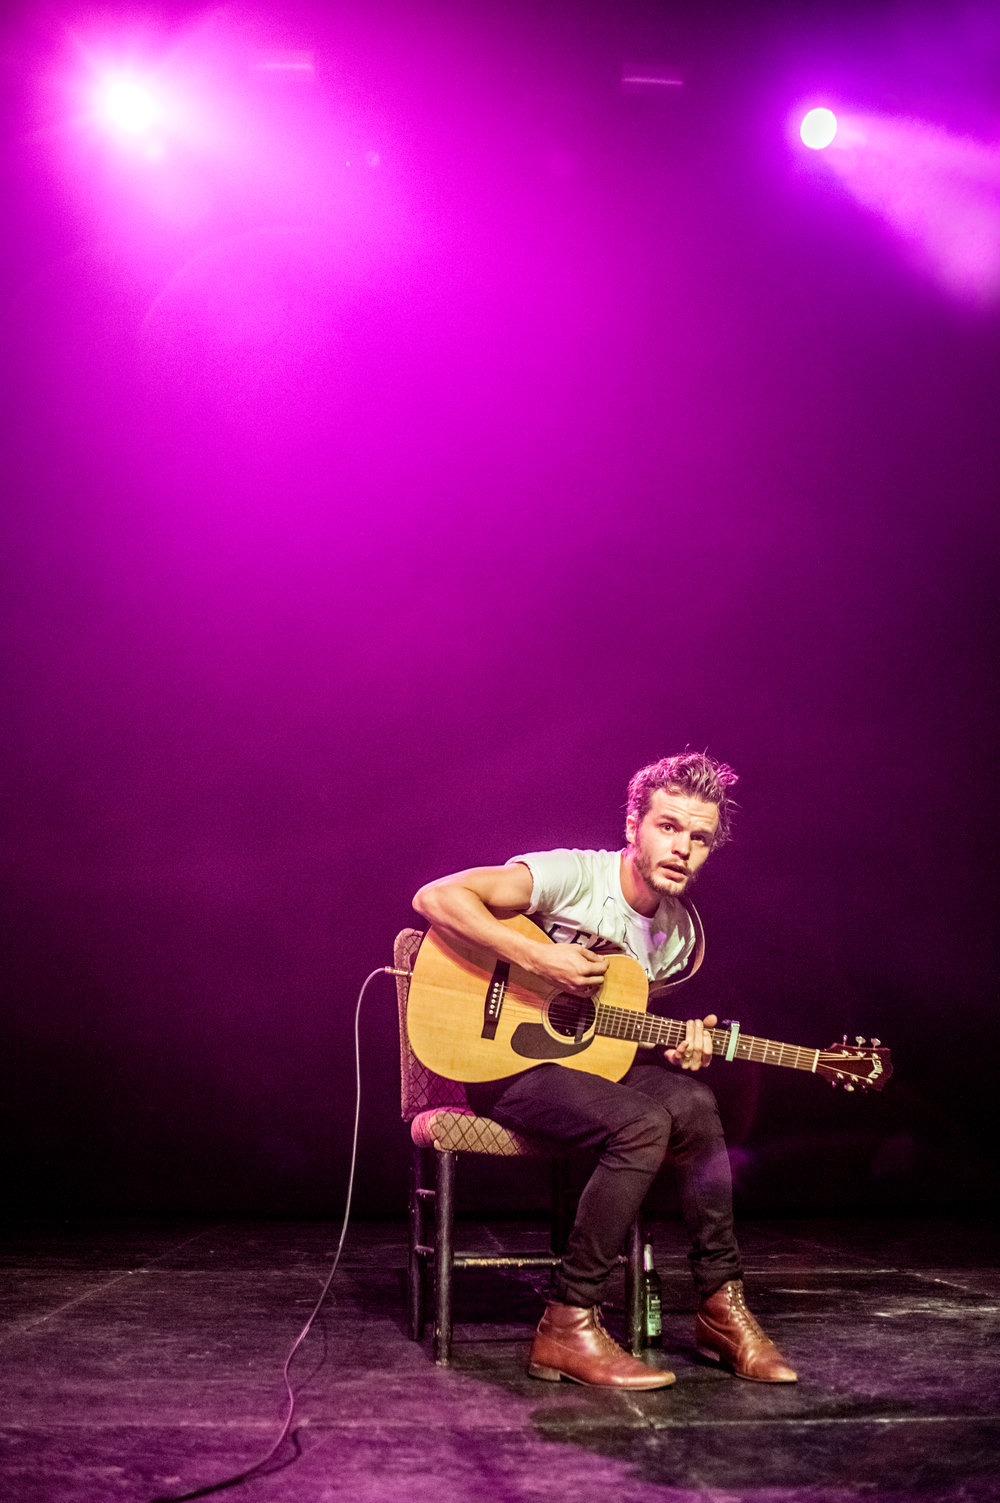 Kristian Matsson / The Tallest Man On Earth